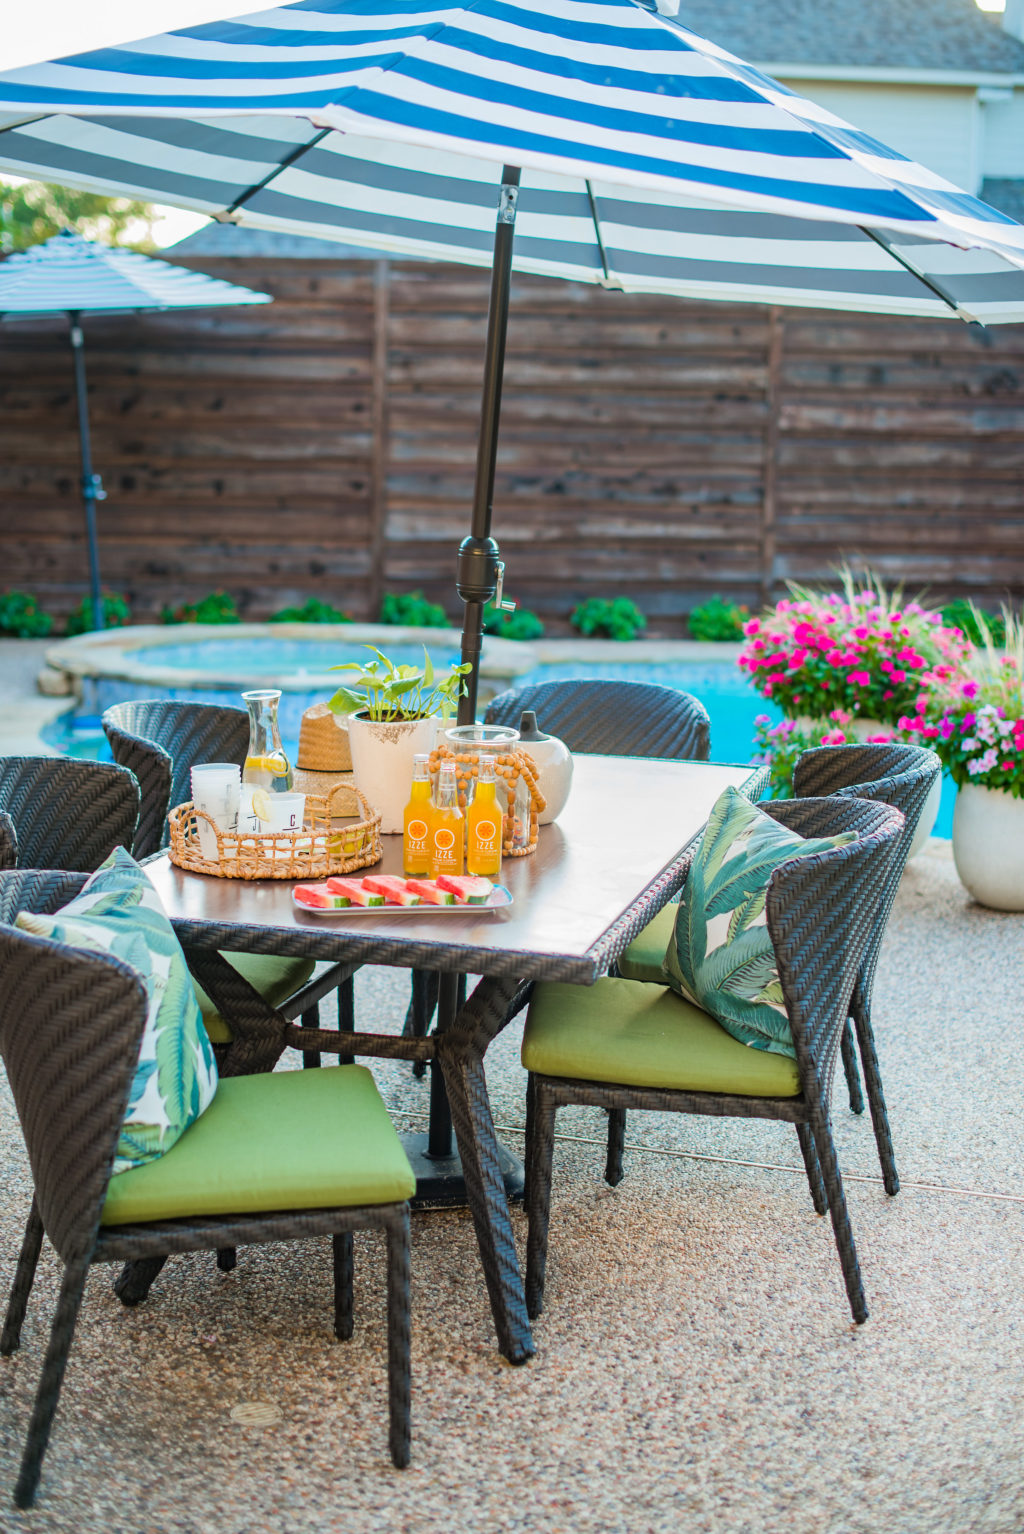 pool patio furniture behind backyard privacy fence during summer